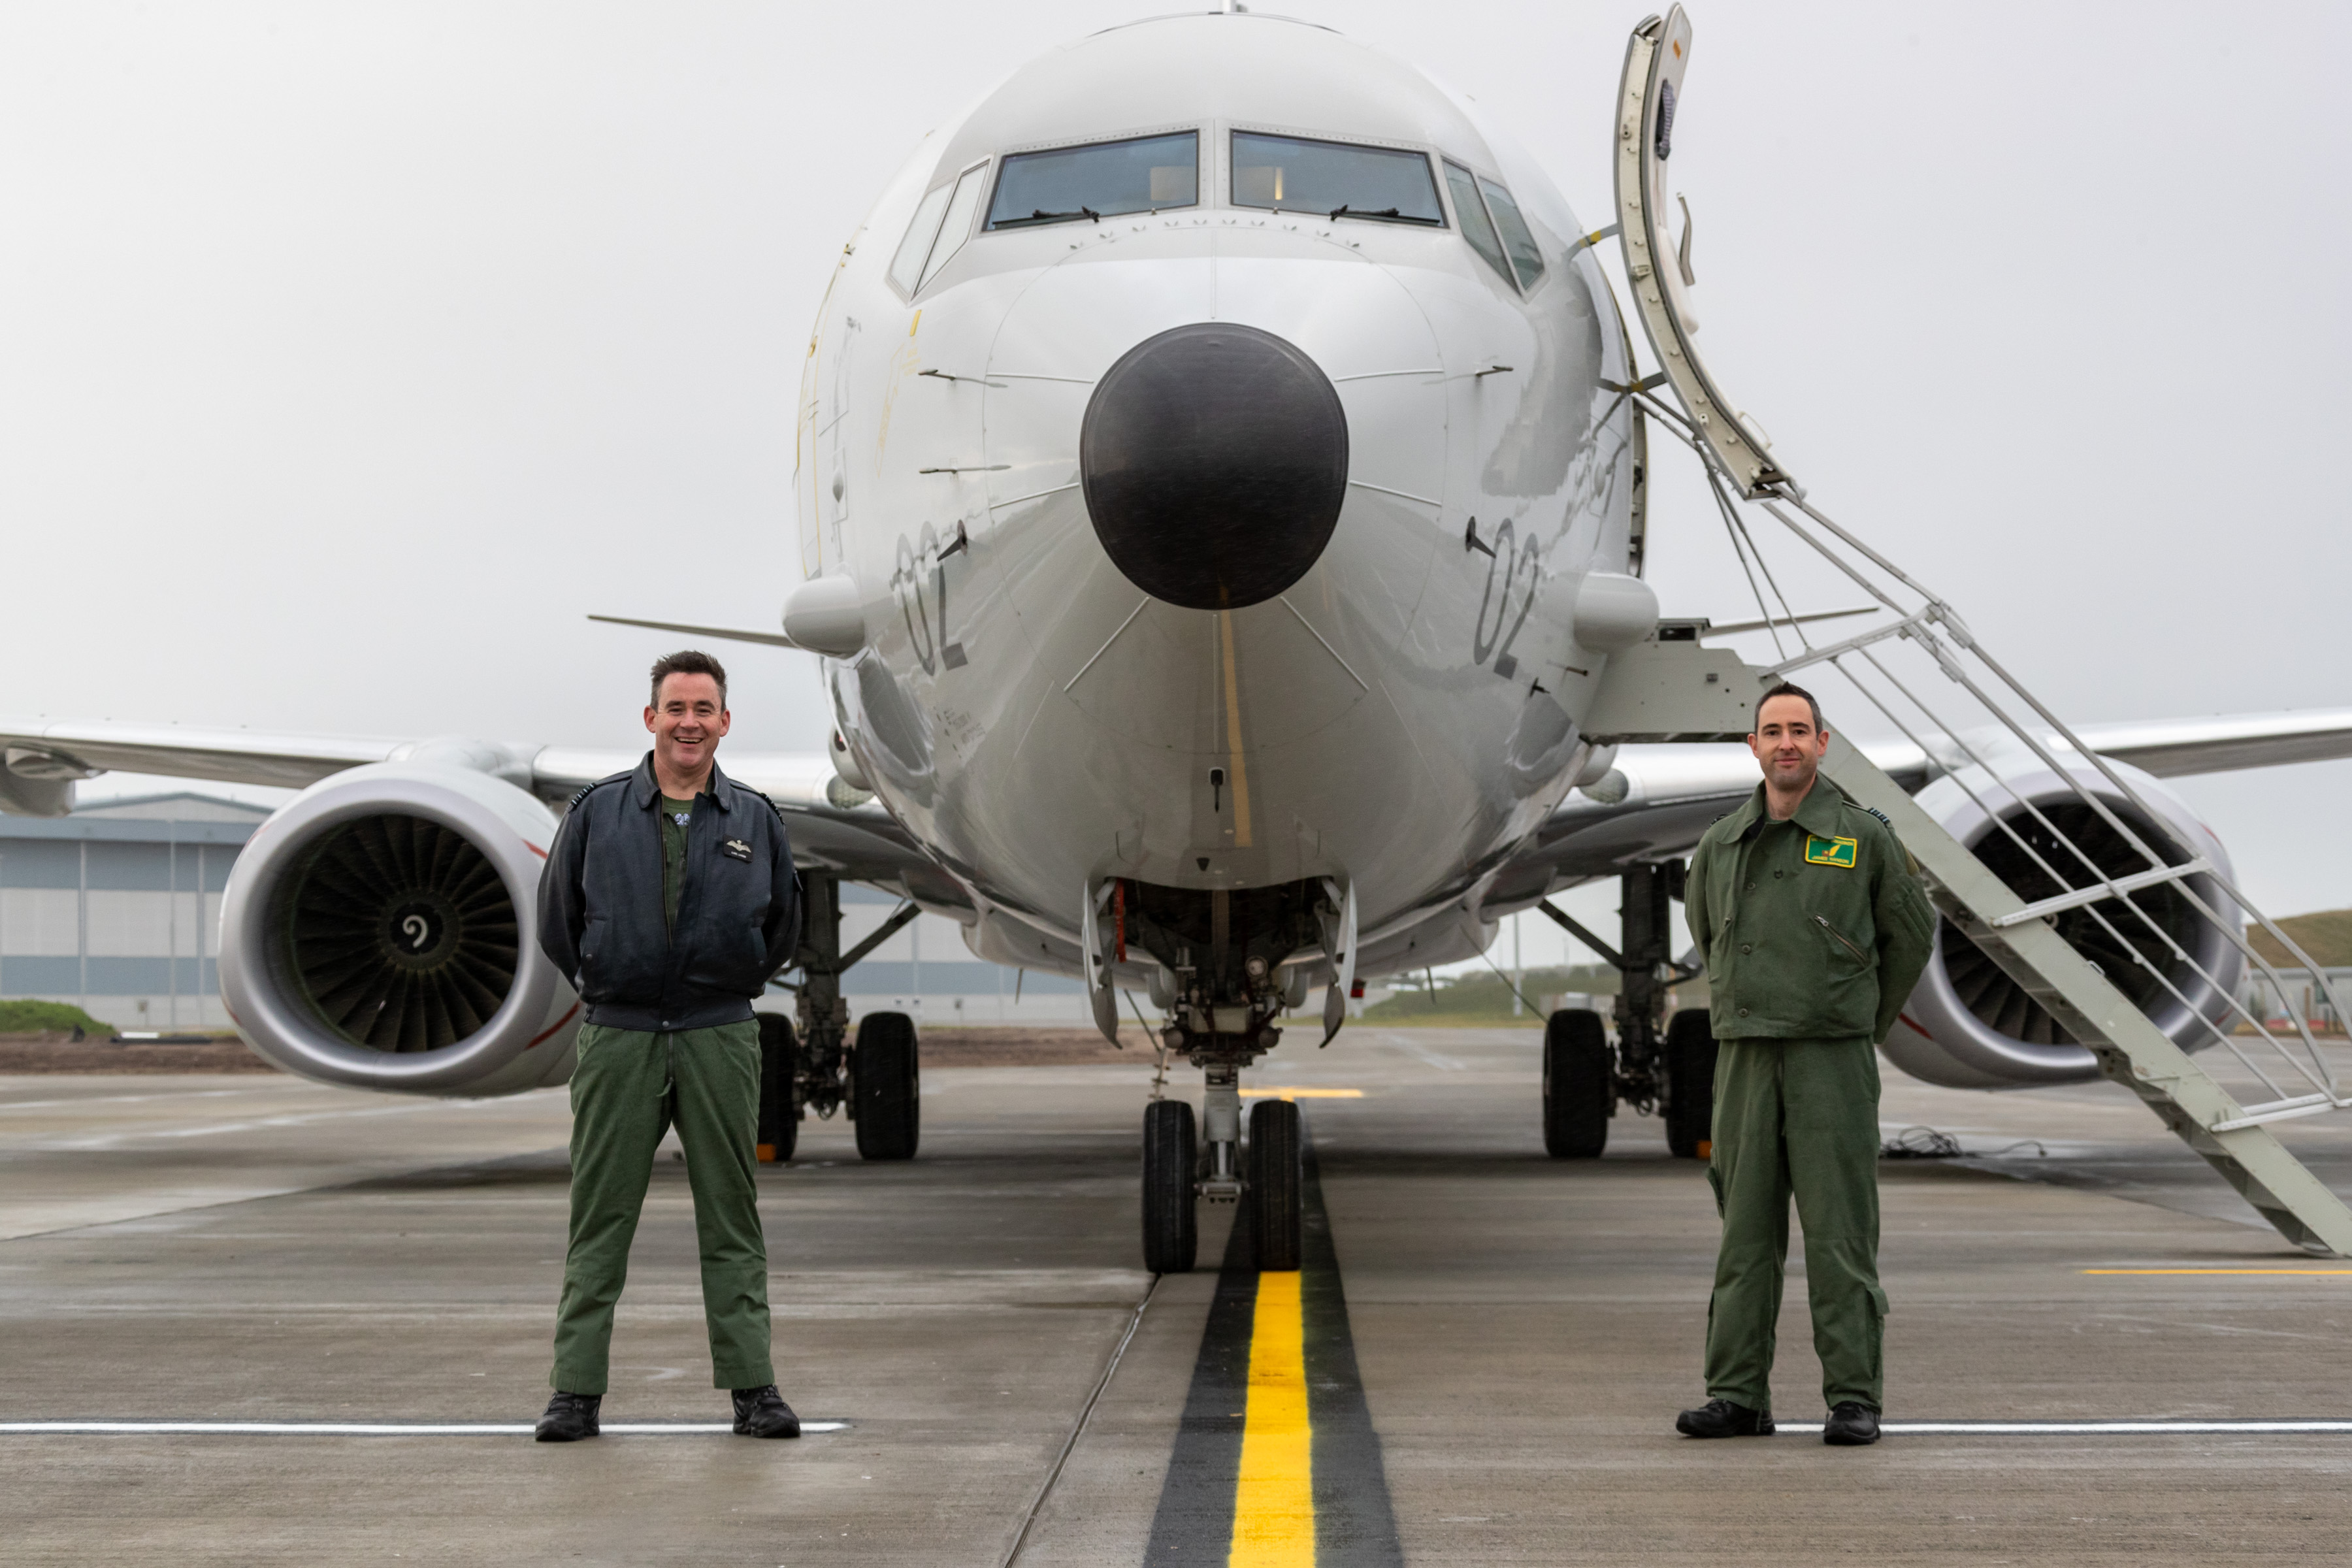 RAF Lossiemouth's Station Commander, Group Captain Chris Layden, stands alongside Officer Commanding 120 Squadron, Wing Commander James Hanson, after they received City of Elgin - the Poseidon aircraft - at Lossiemouth for the first time